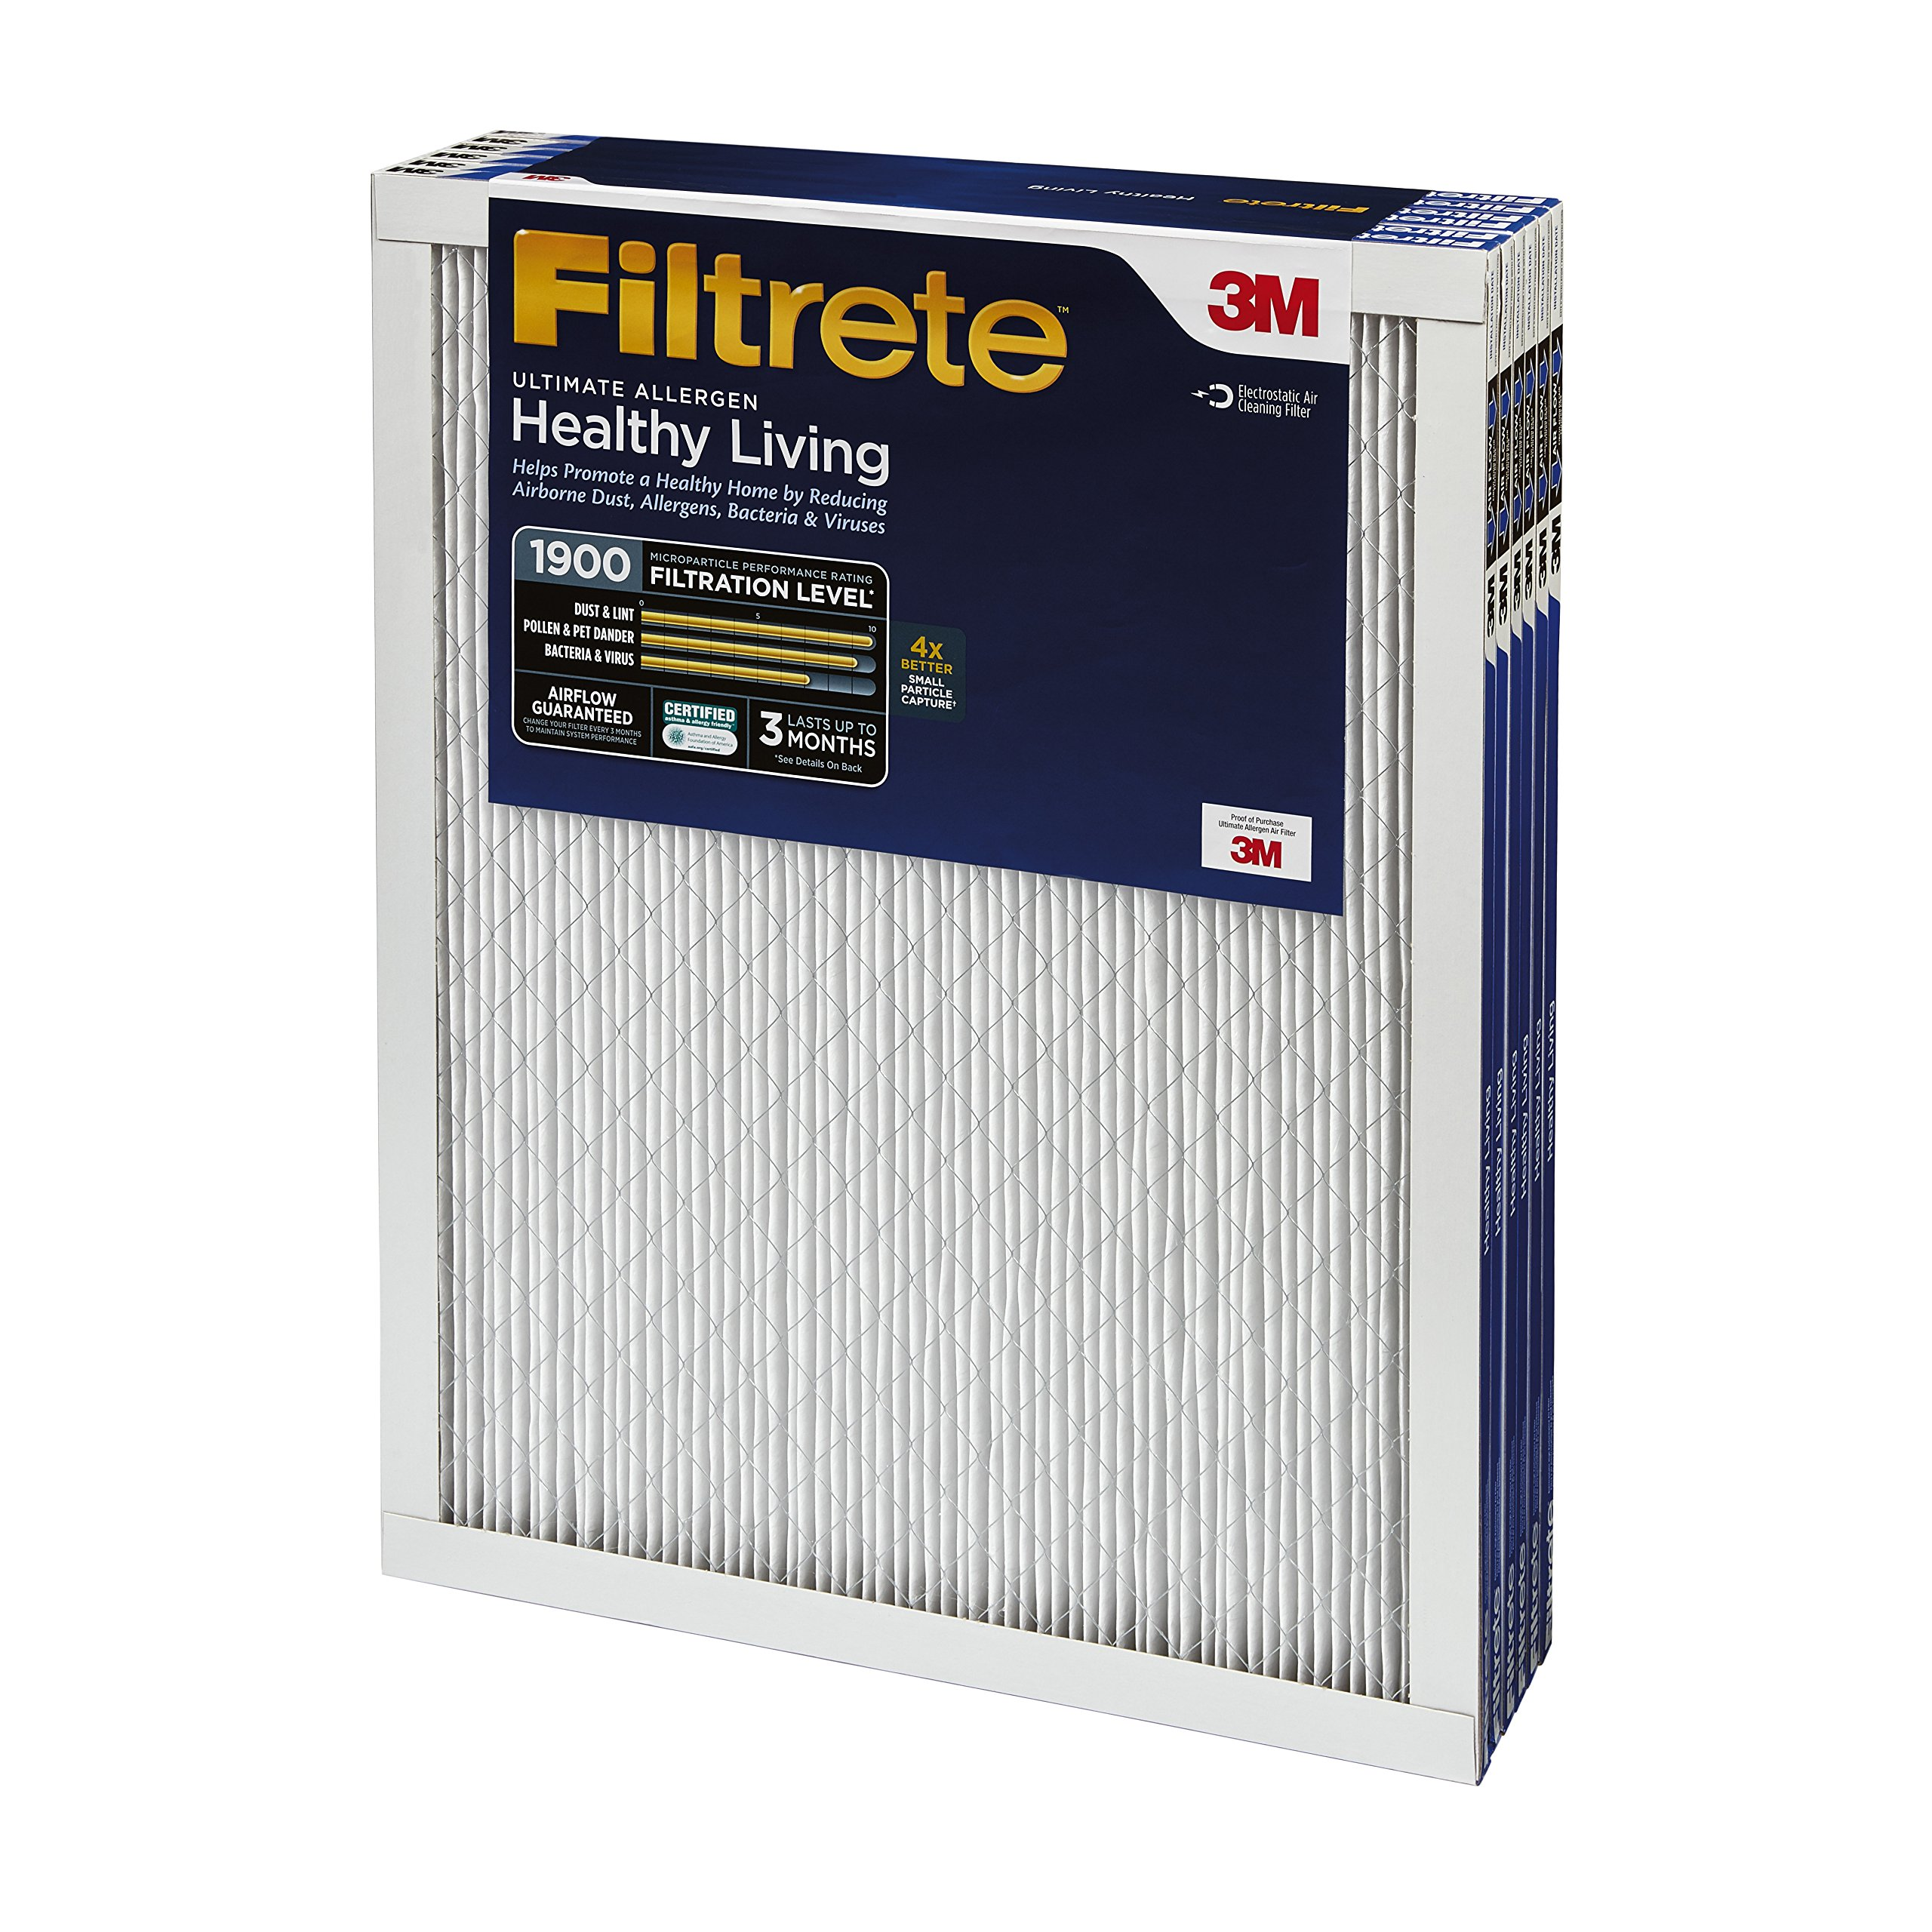 Filtrete MPR 1900 24 x 24 x 1 Healthy Living Ultimate Allergen Reduction AC Furnace Air Filter, Attracts Fine Inhalable Particles, Guaranteed Airflow up to 90 days, 6-Pack by Filtrete (Image #3)